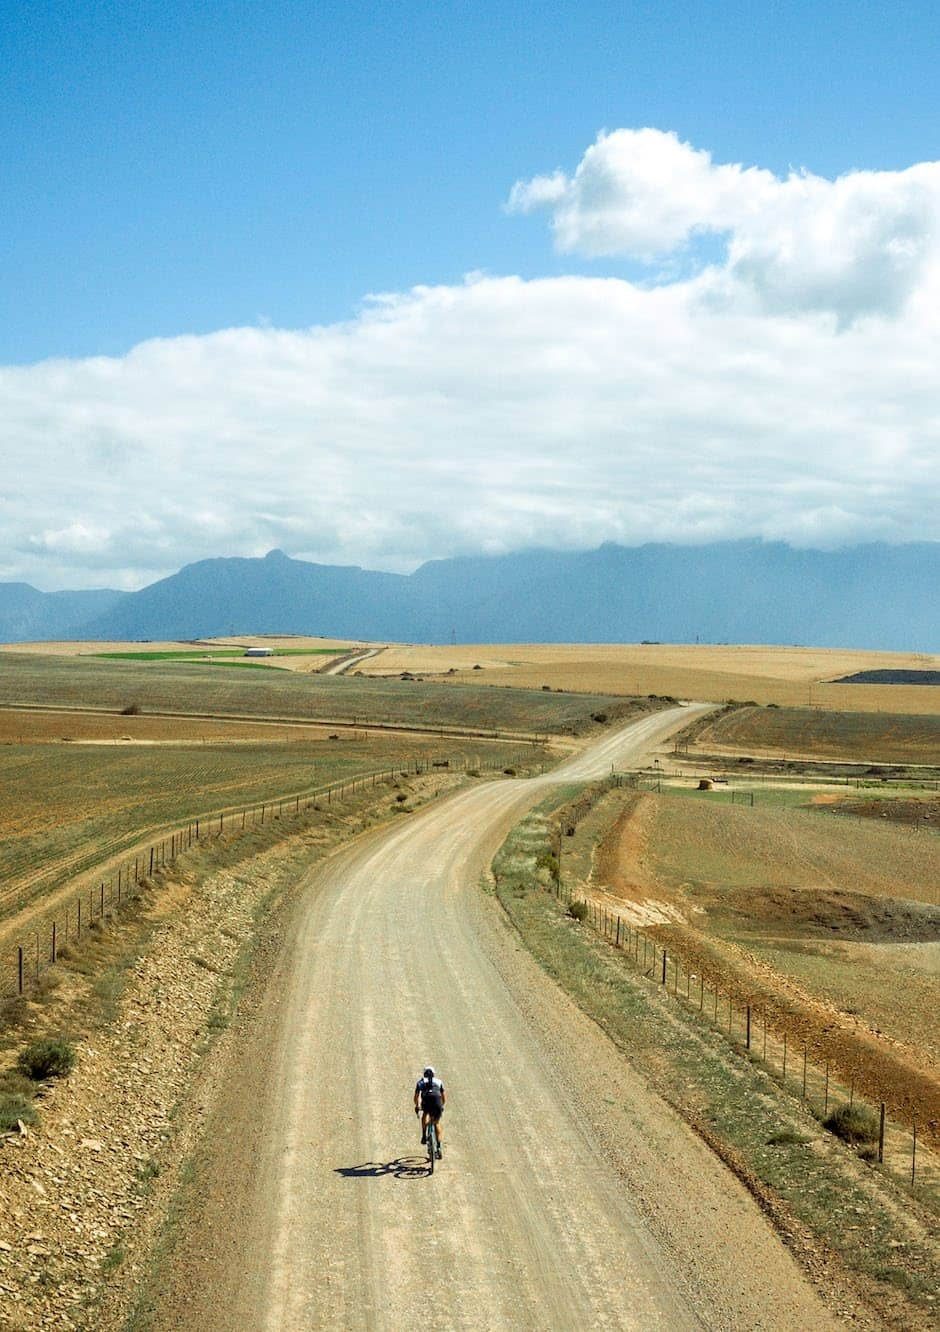 The Ultimate Adventure, On South Africa's Network Of Gravel Roads